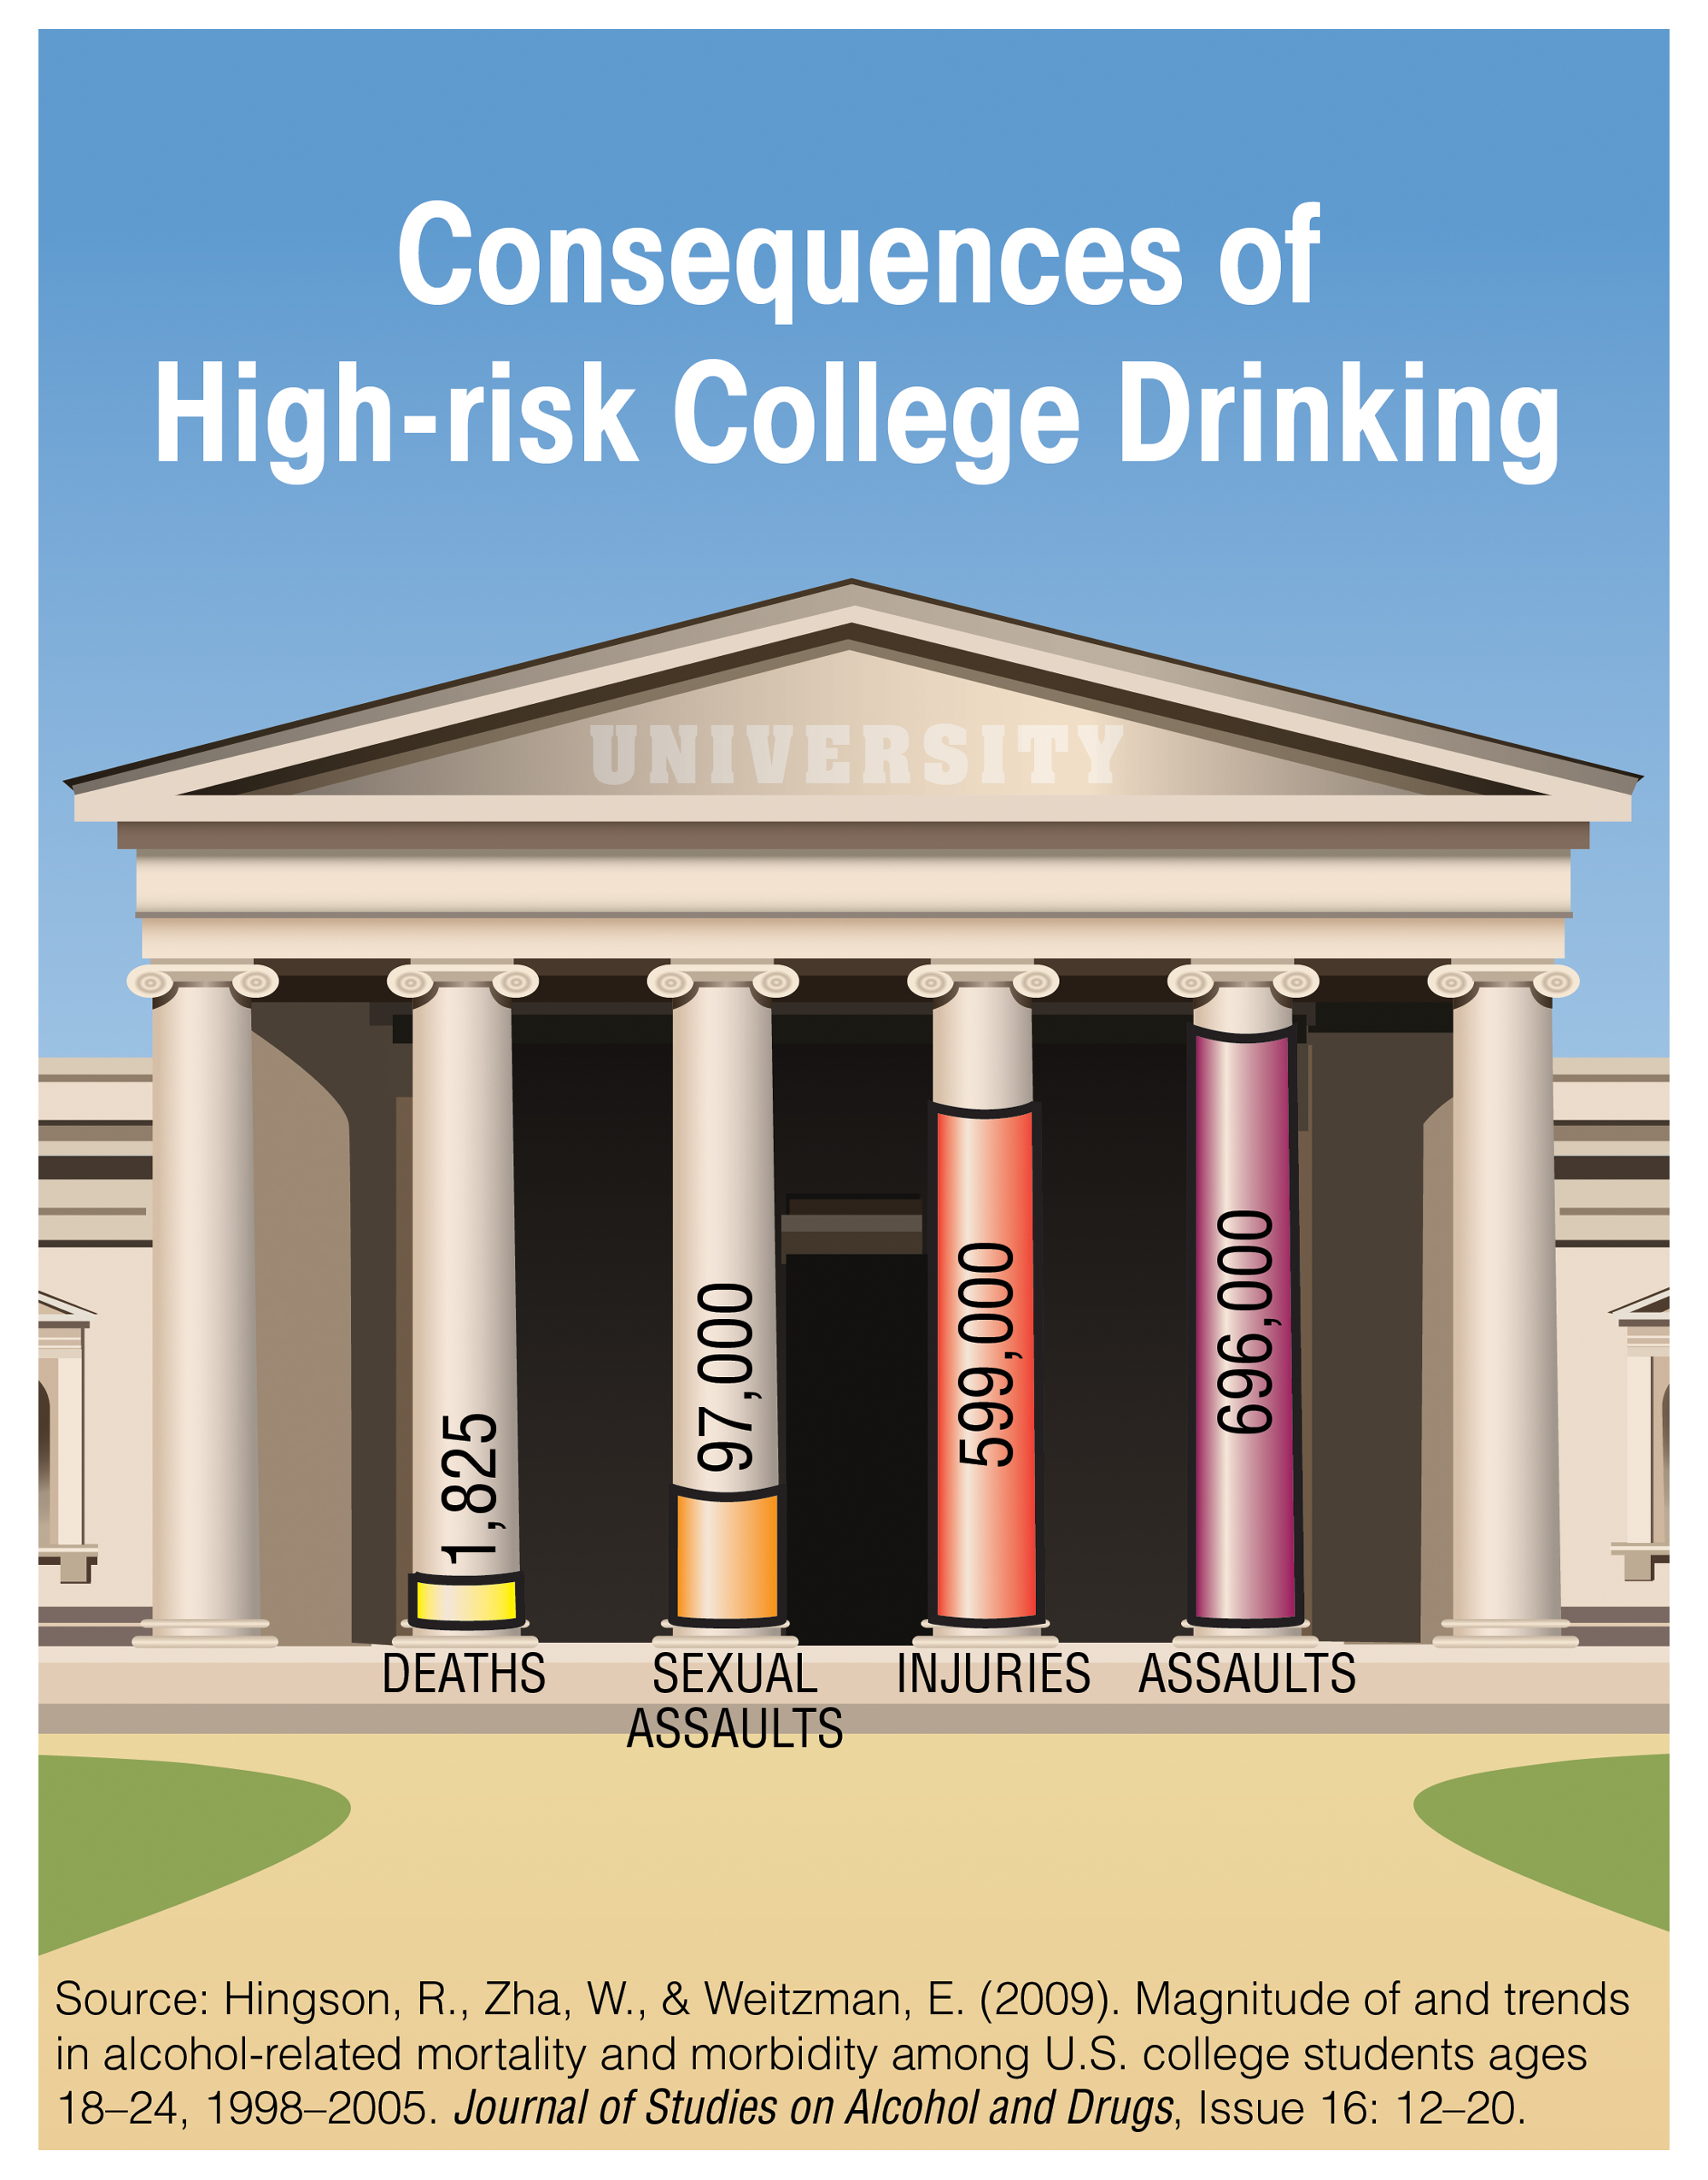 Consequences of High-risk College Drinking Chart - Deaths 1,825; Sexual Assaults 97,000; Injuries 599,000; and Assaults 696,00